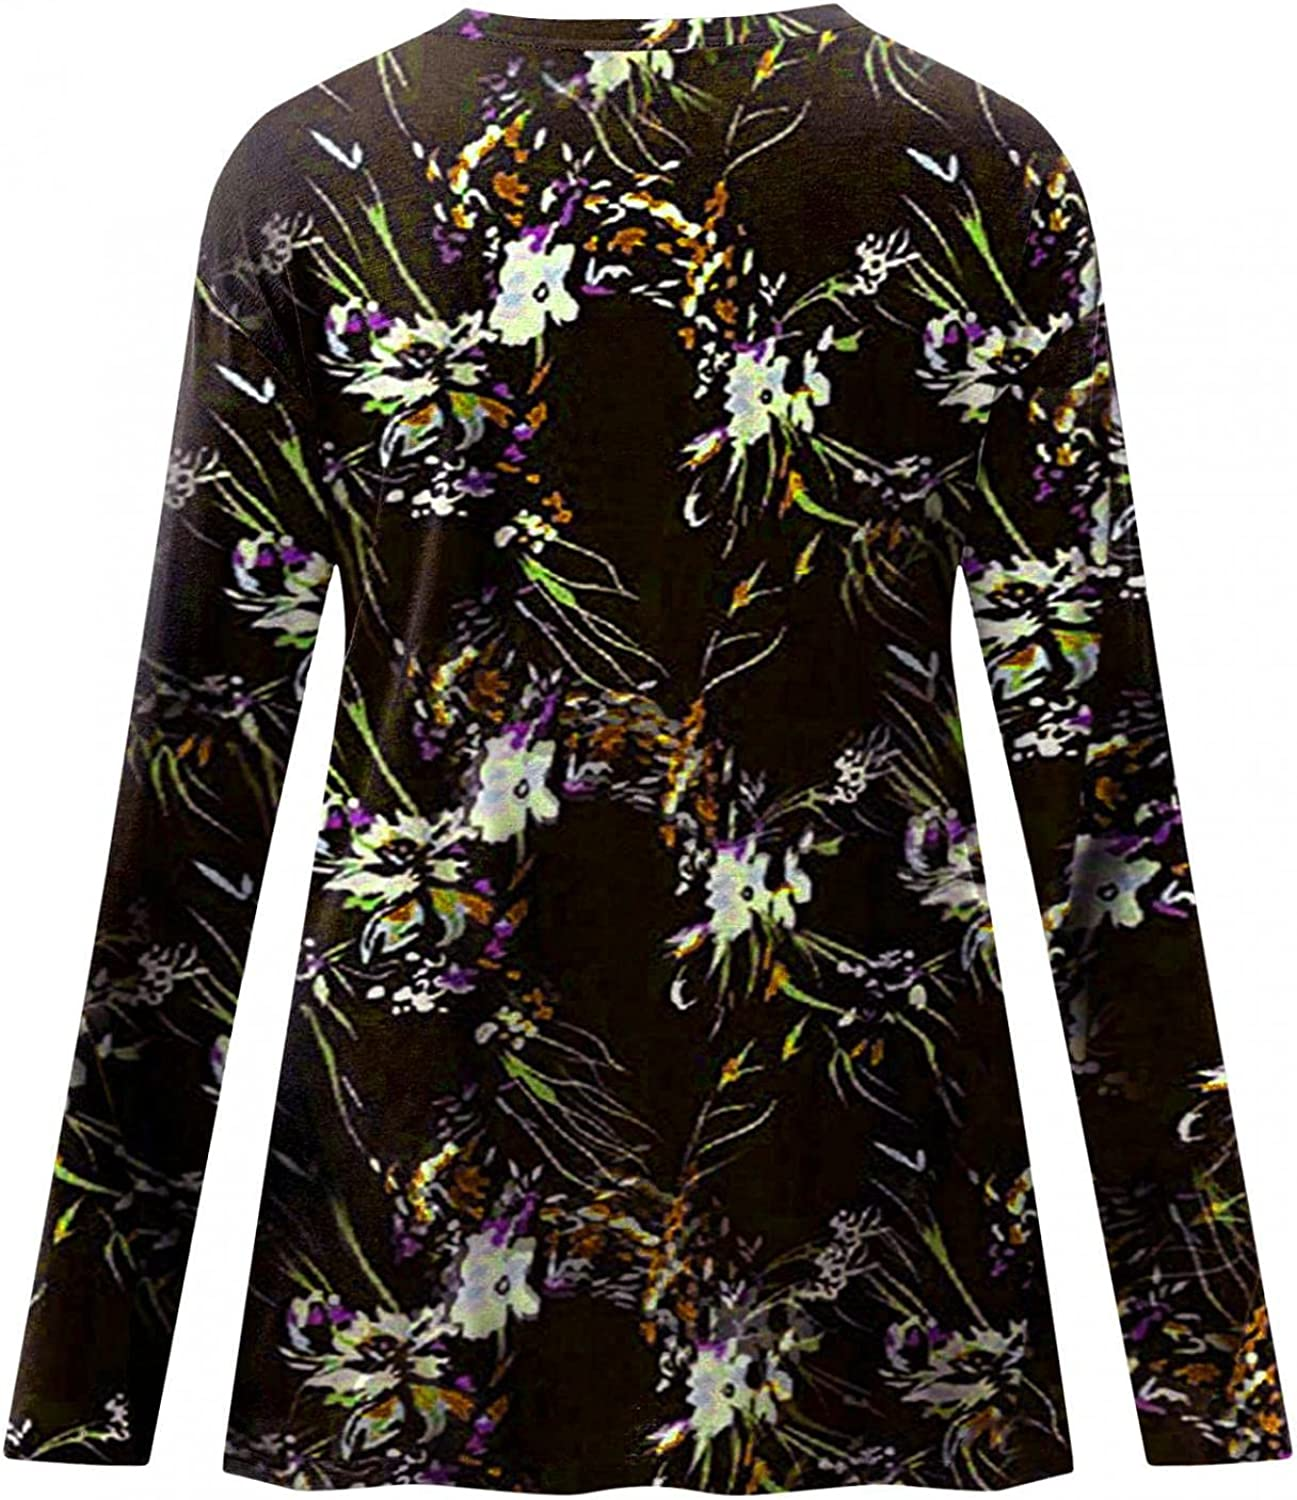 FABIURT Long Sleeve Shirts Women Casual, V Neck Gradient Printed Trendy Tunic Pullover Tie Dye Workout Loose Tops Blouse